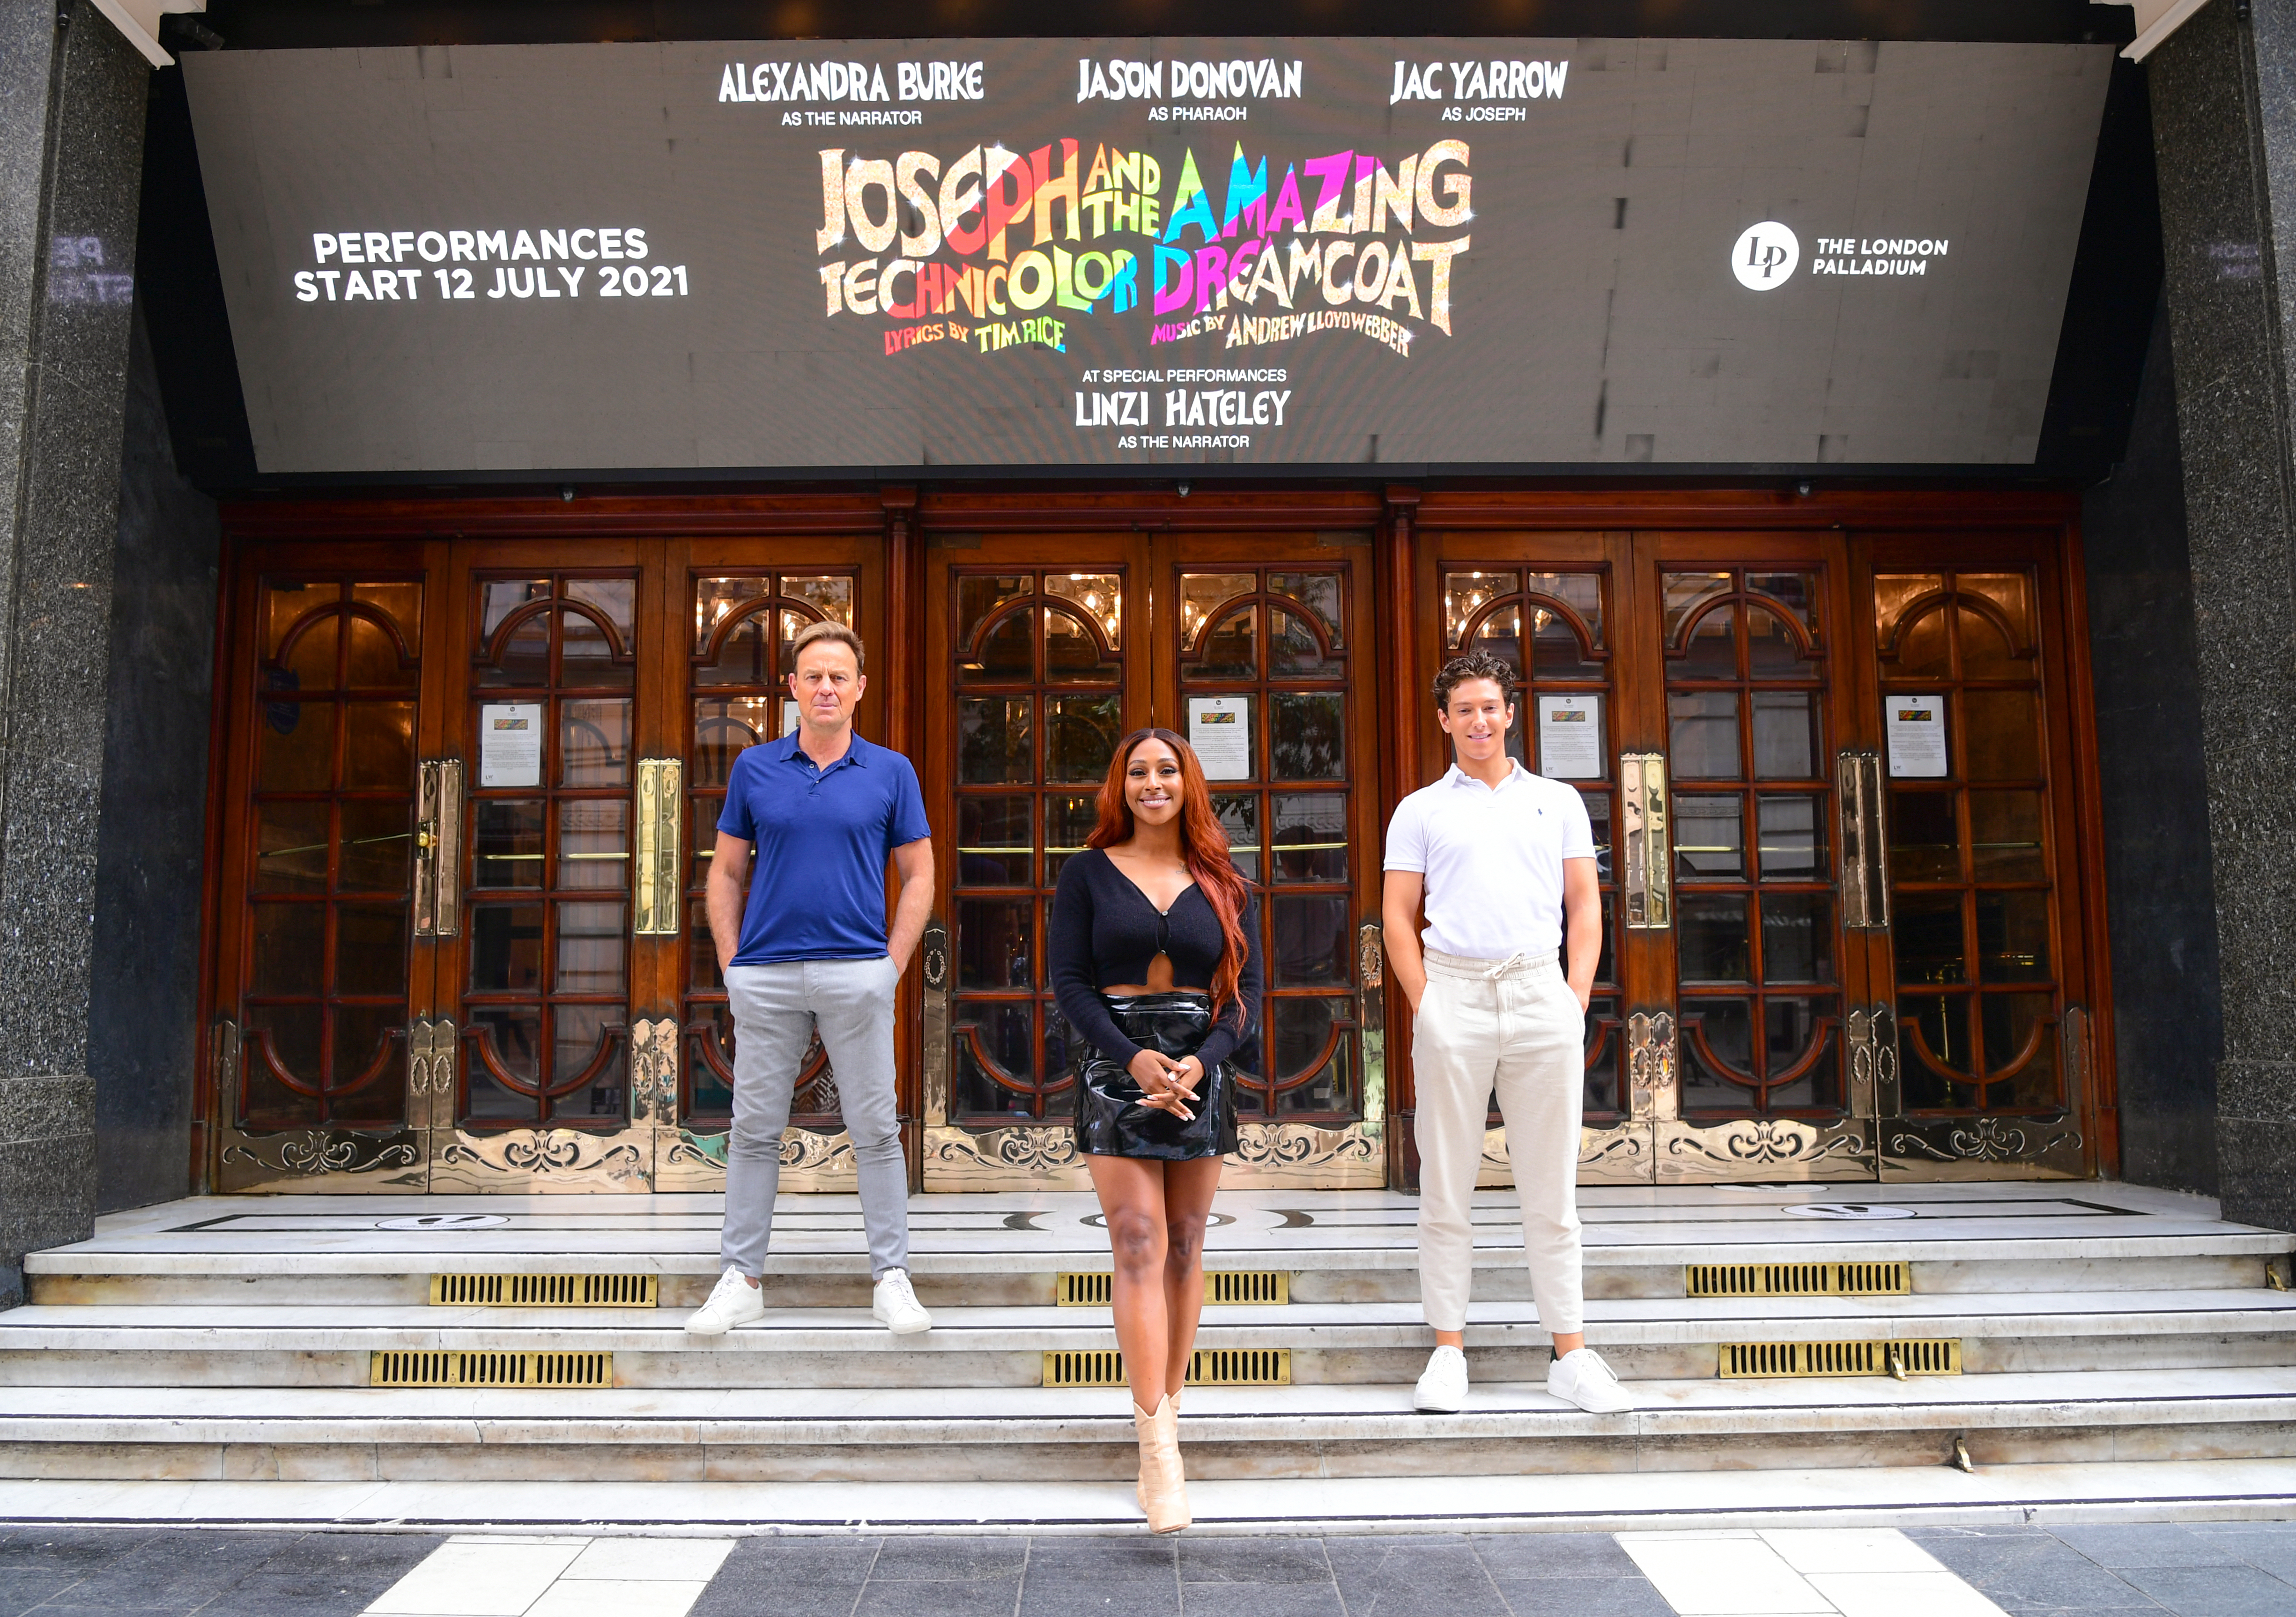 <p>(left to right) Jason Donovan, Alexandra Burke and Jac Yarrow during a media day for the musical Joseph and the Technicolor Dreamcoat at the London Palladium. Picture date: Monday July 12, 2021.</p>